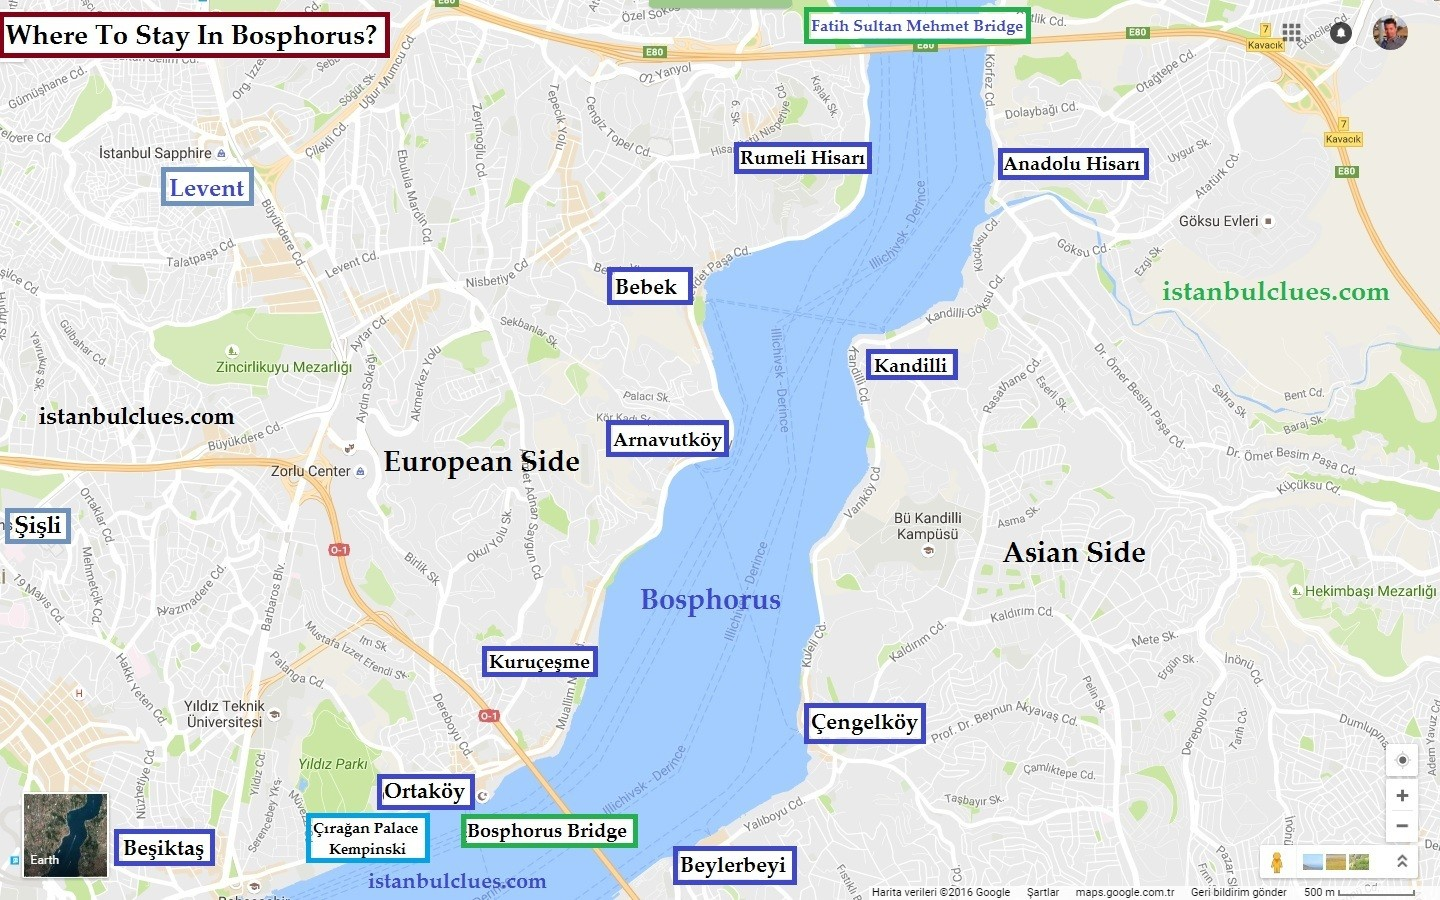 where-to-stay-in-istanbuls-bosphorus-map